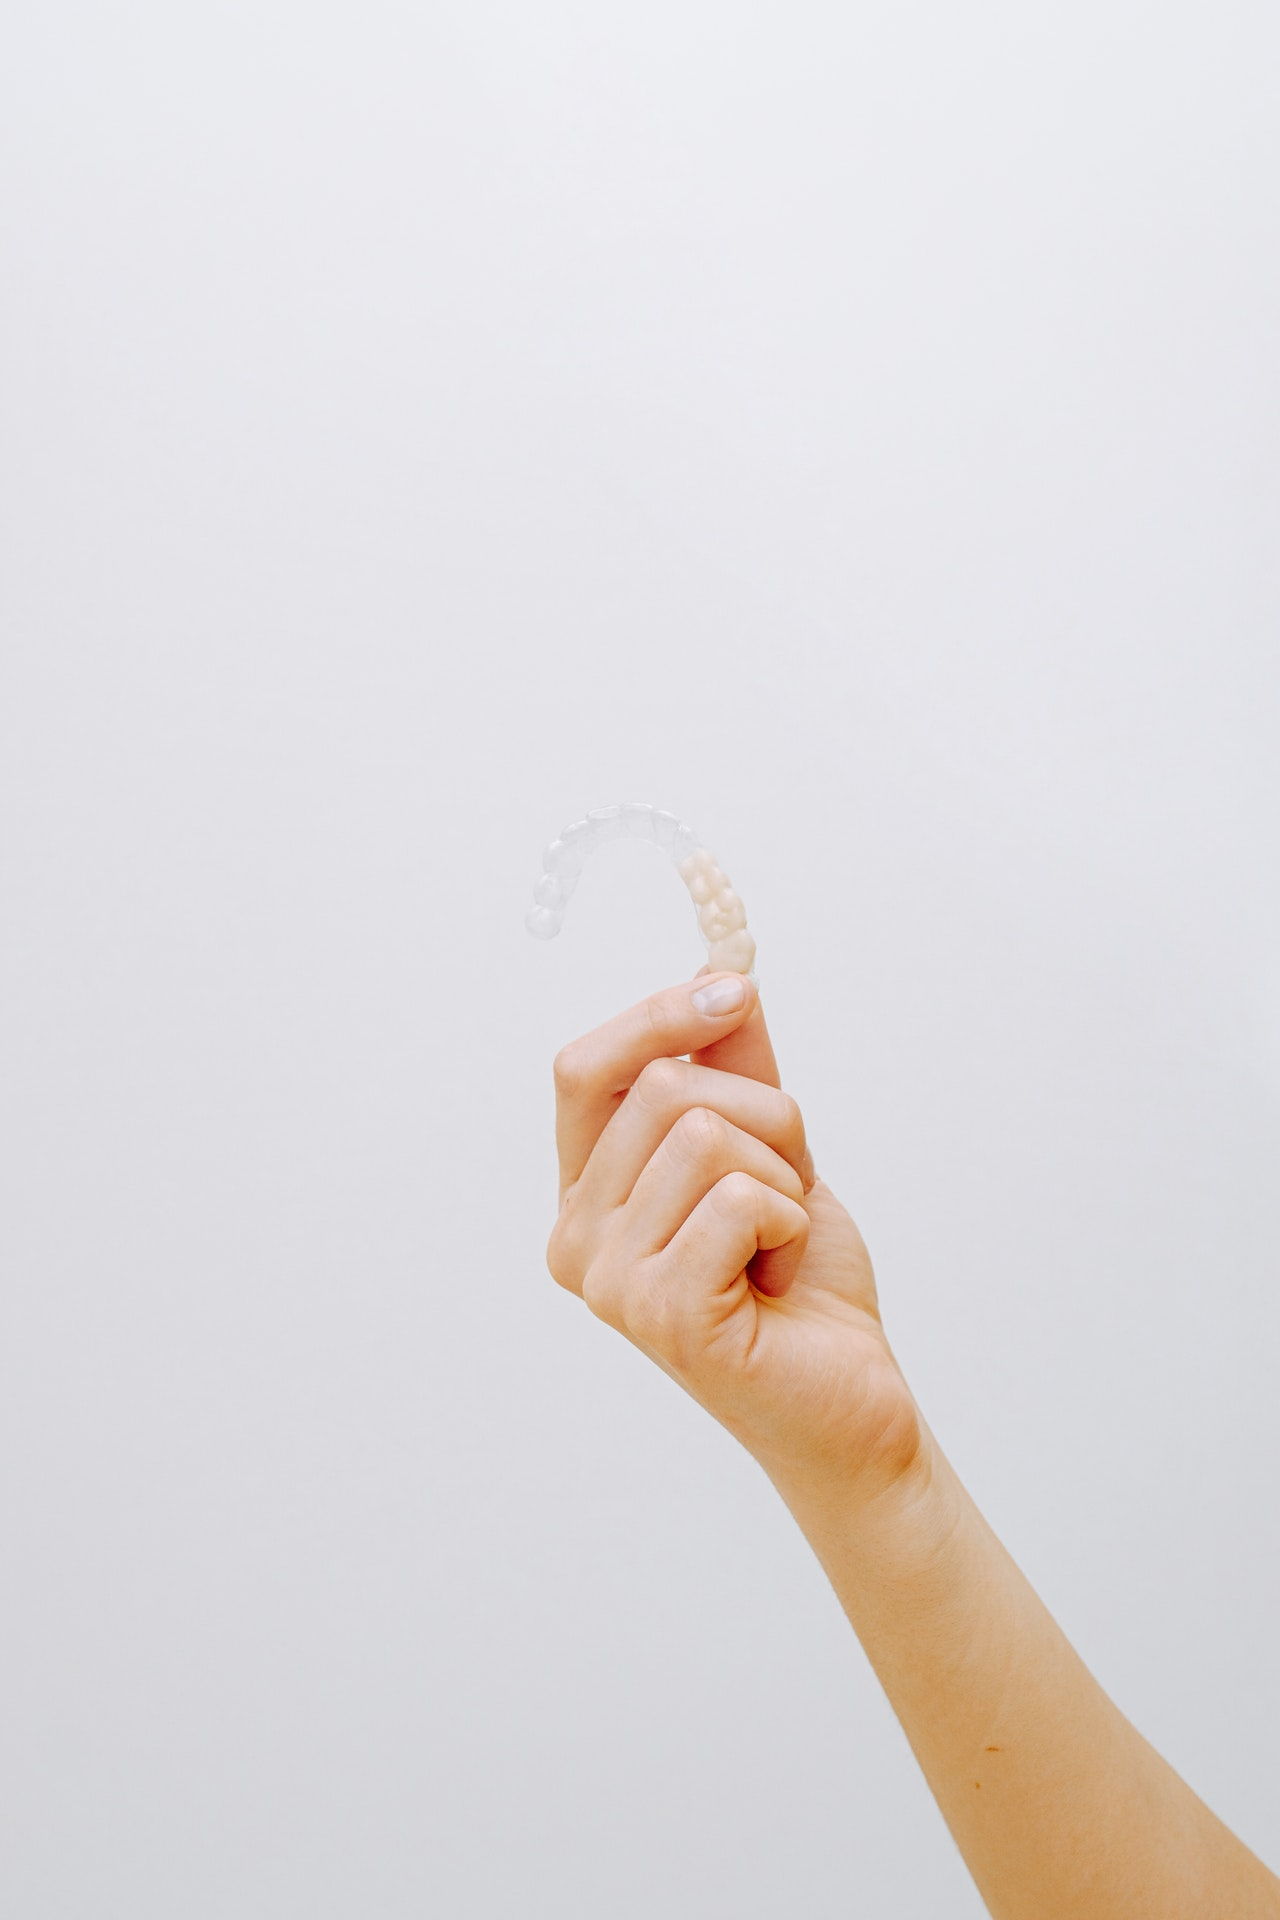 Invisalign: A Comfortable and Faster Method to Align Crooked Teeth